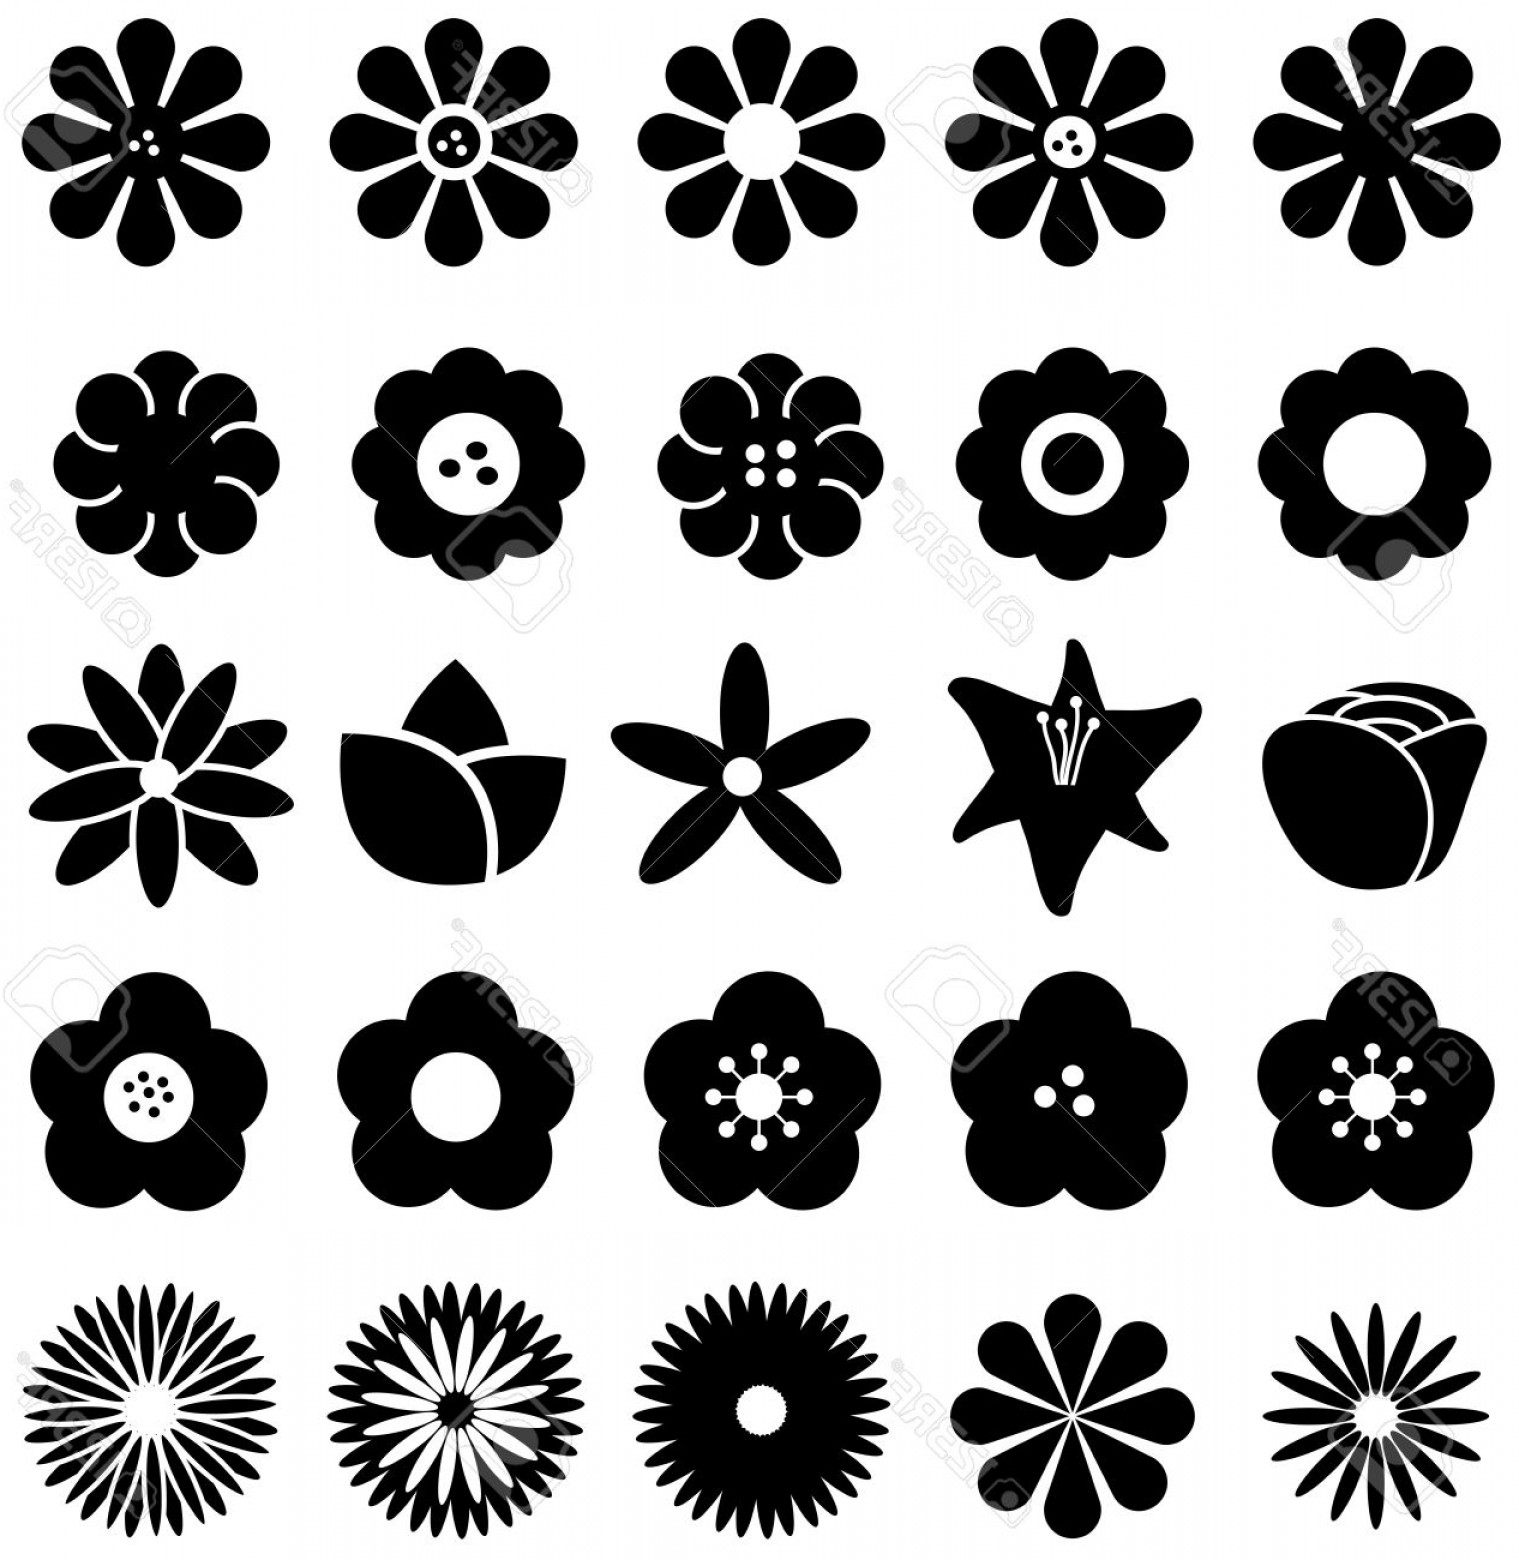 Simple Vector Daisy: Photostock Vector Simple Shape Geometric Flower Such As Rose Tulip Sunflower Daisy And Other Silhouette Icon Collectio